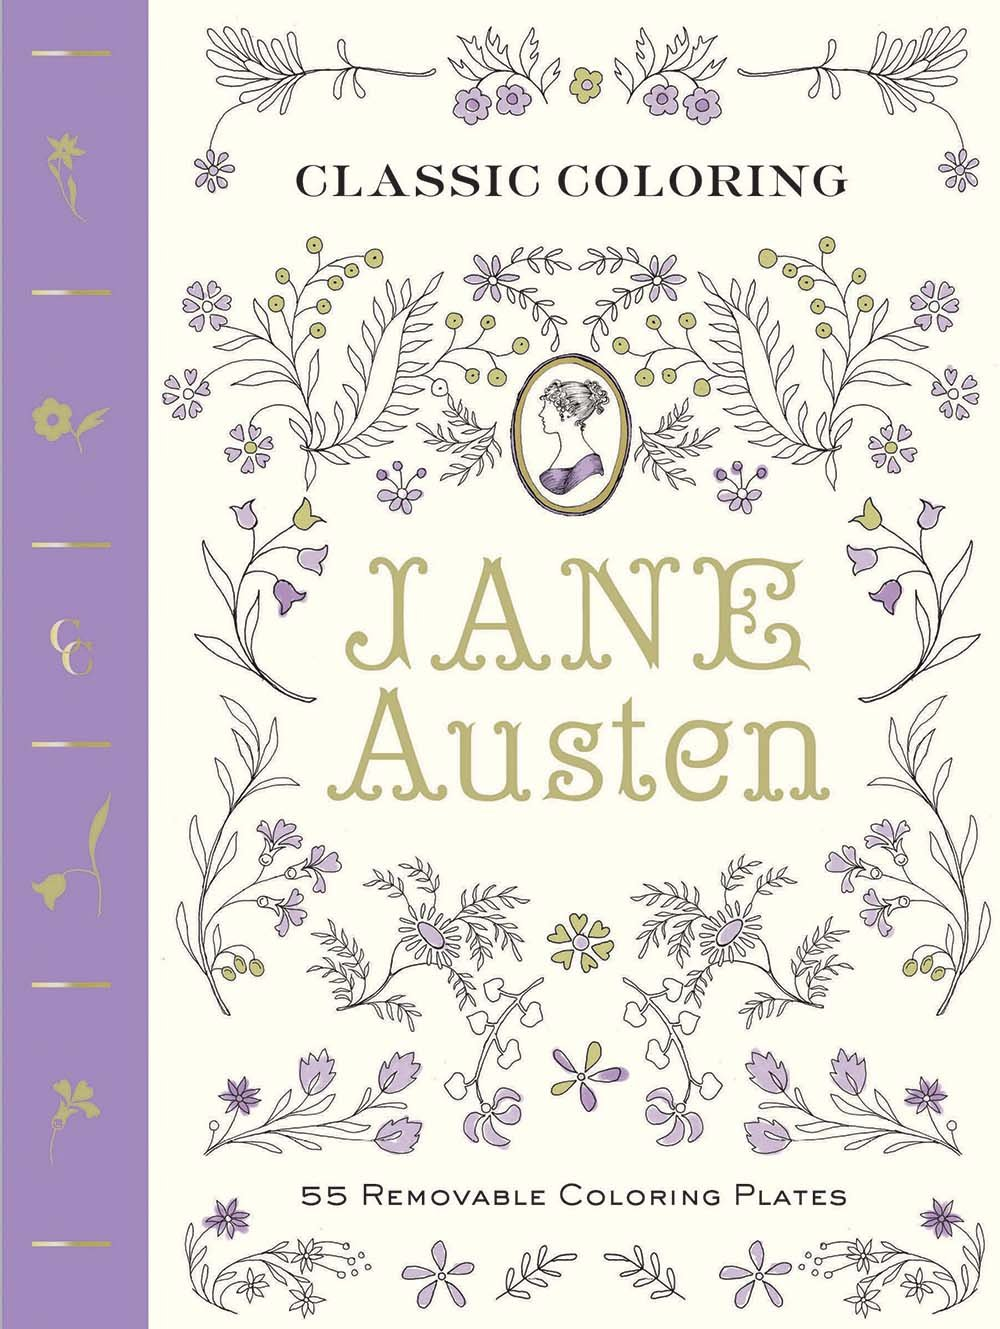 classic coloring jane austen coloring book 55 removable